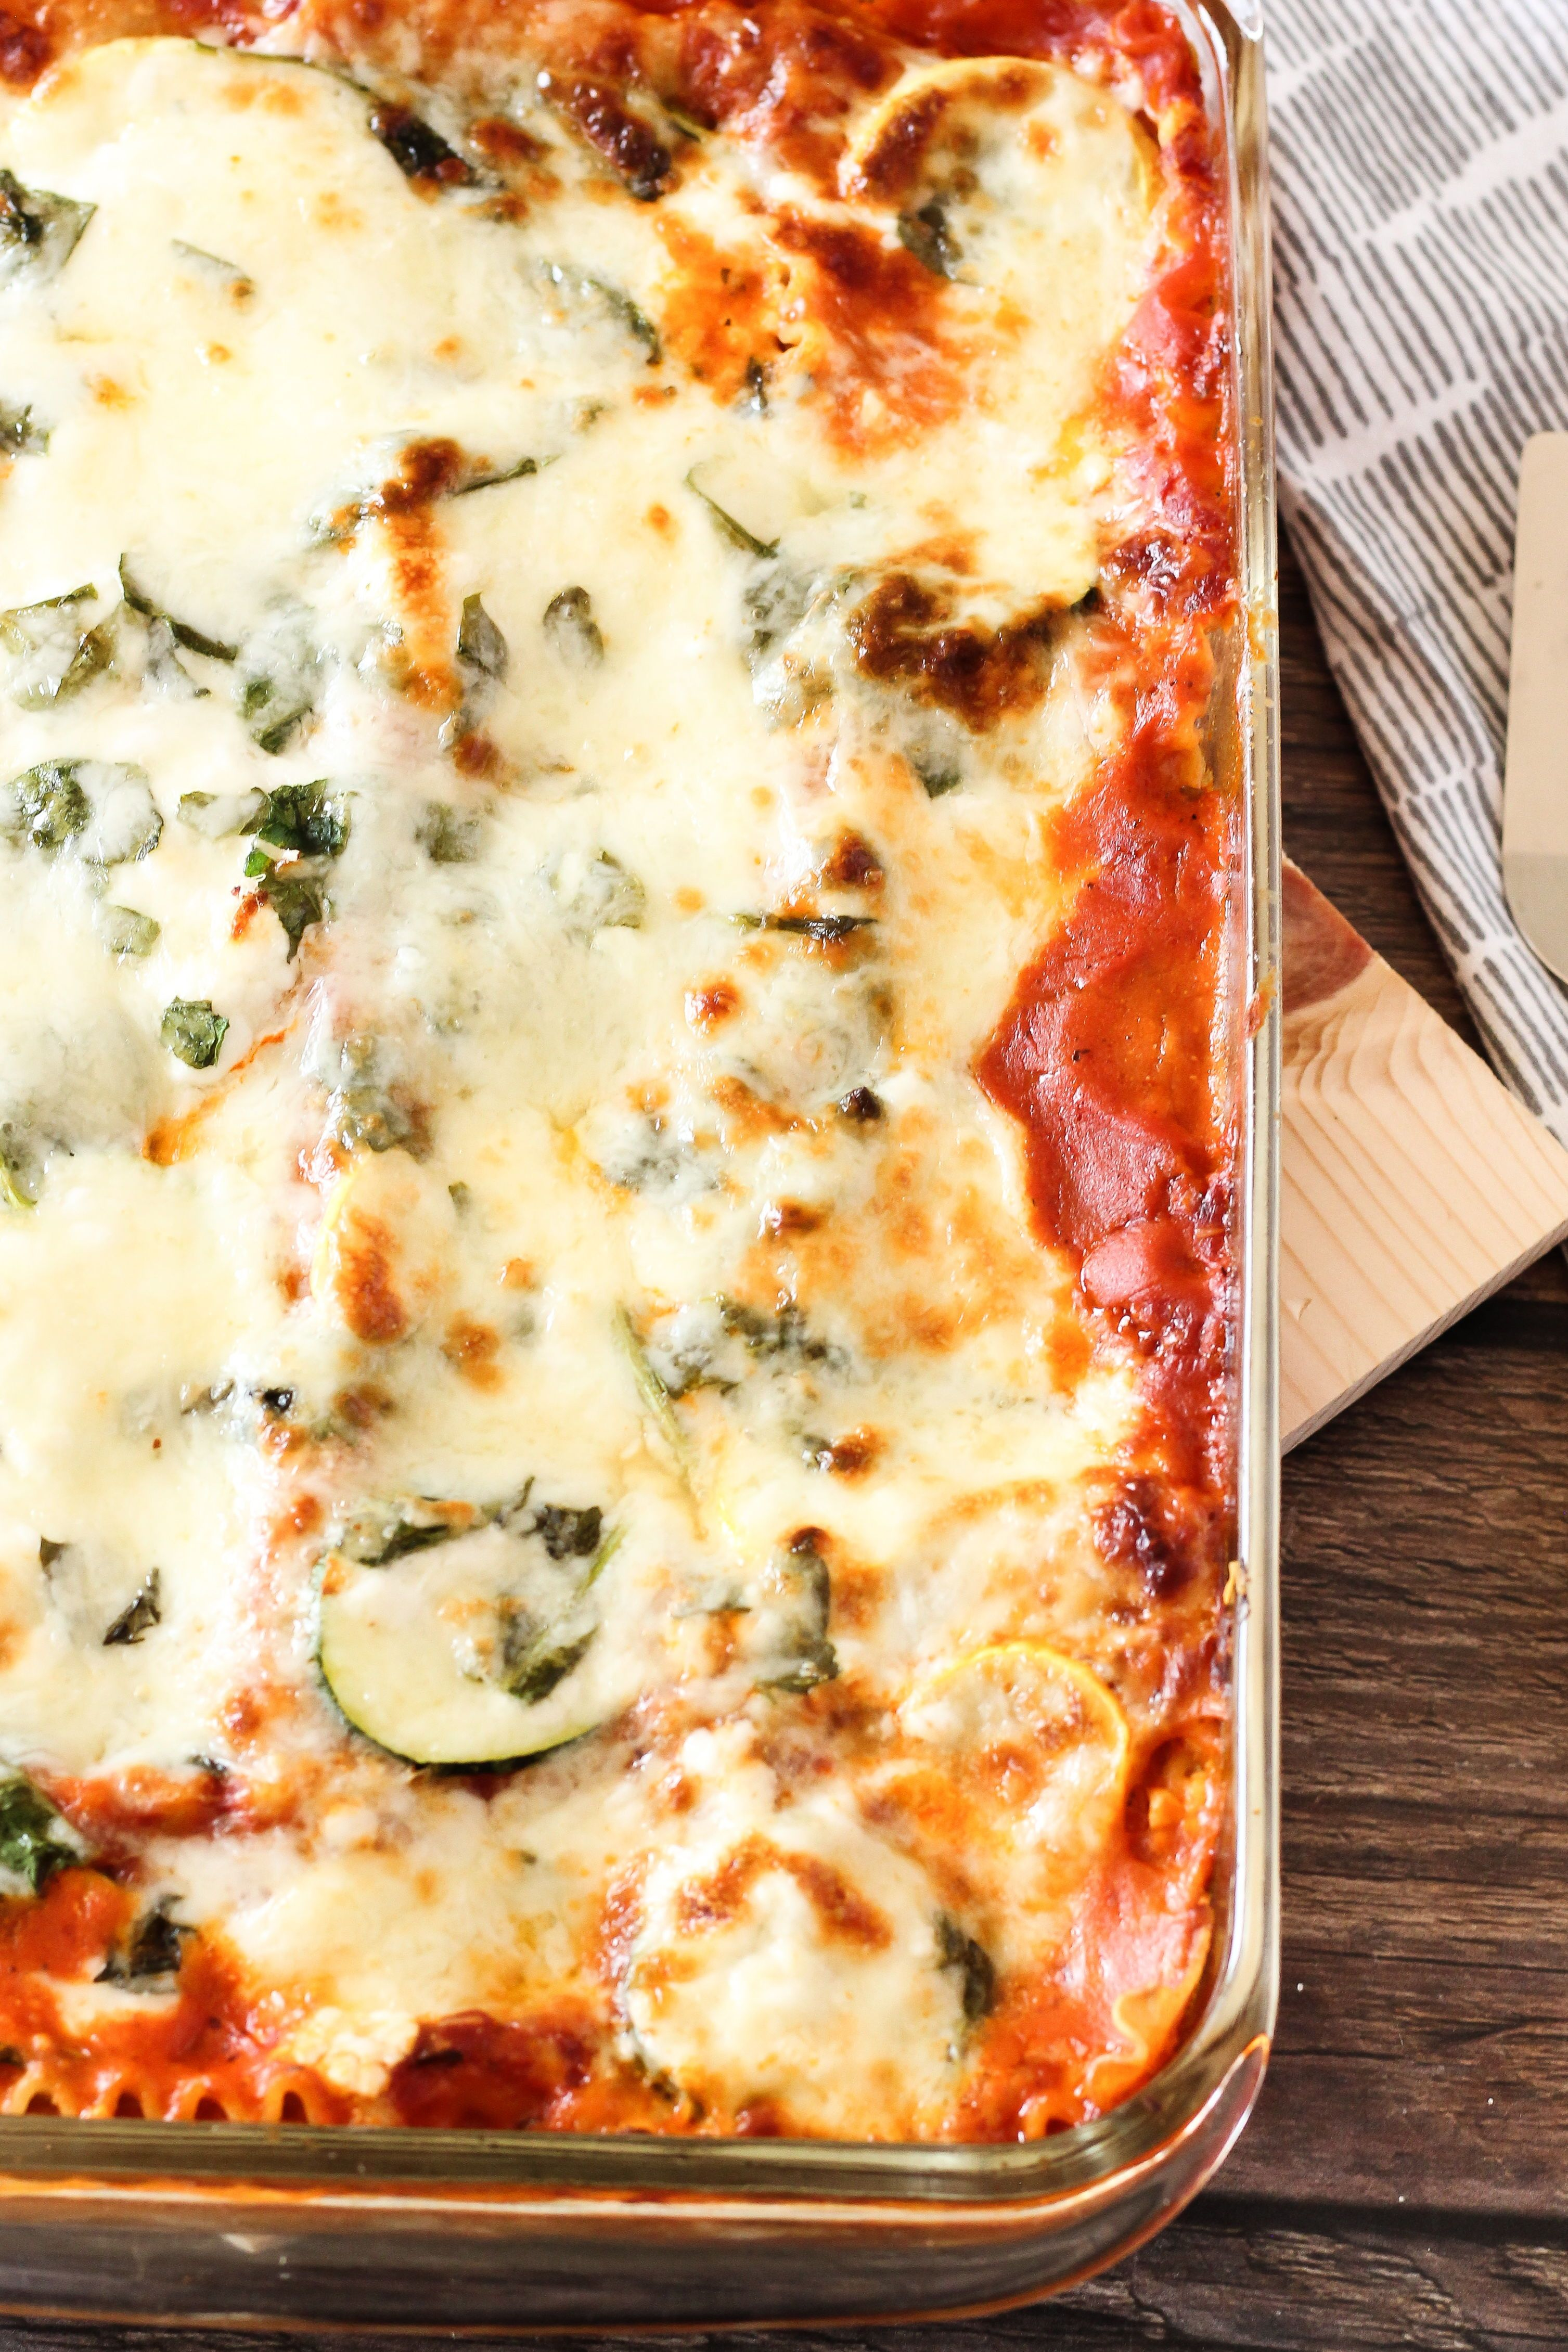 Easy Vegetable Lasagna with Zucchini and Spinach - Feeding Your Fam